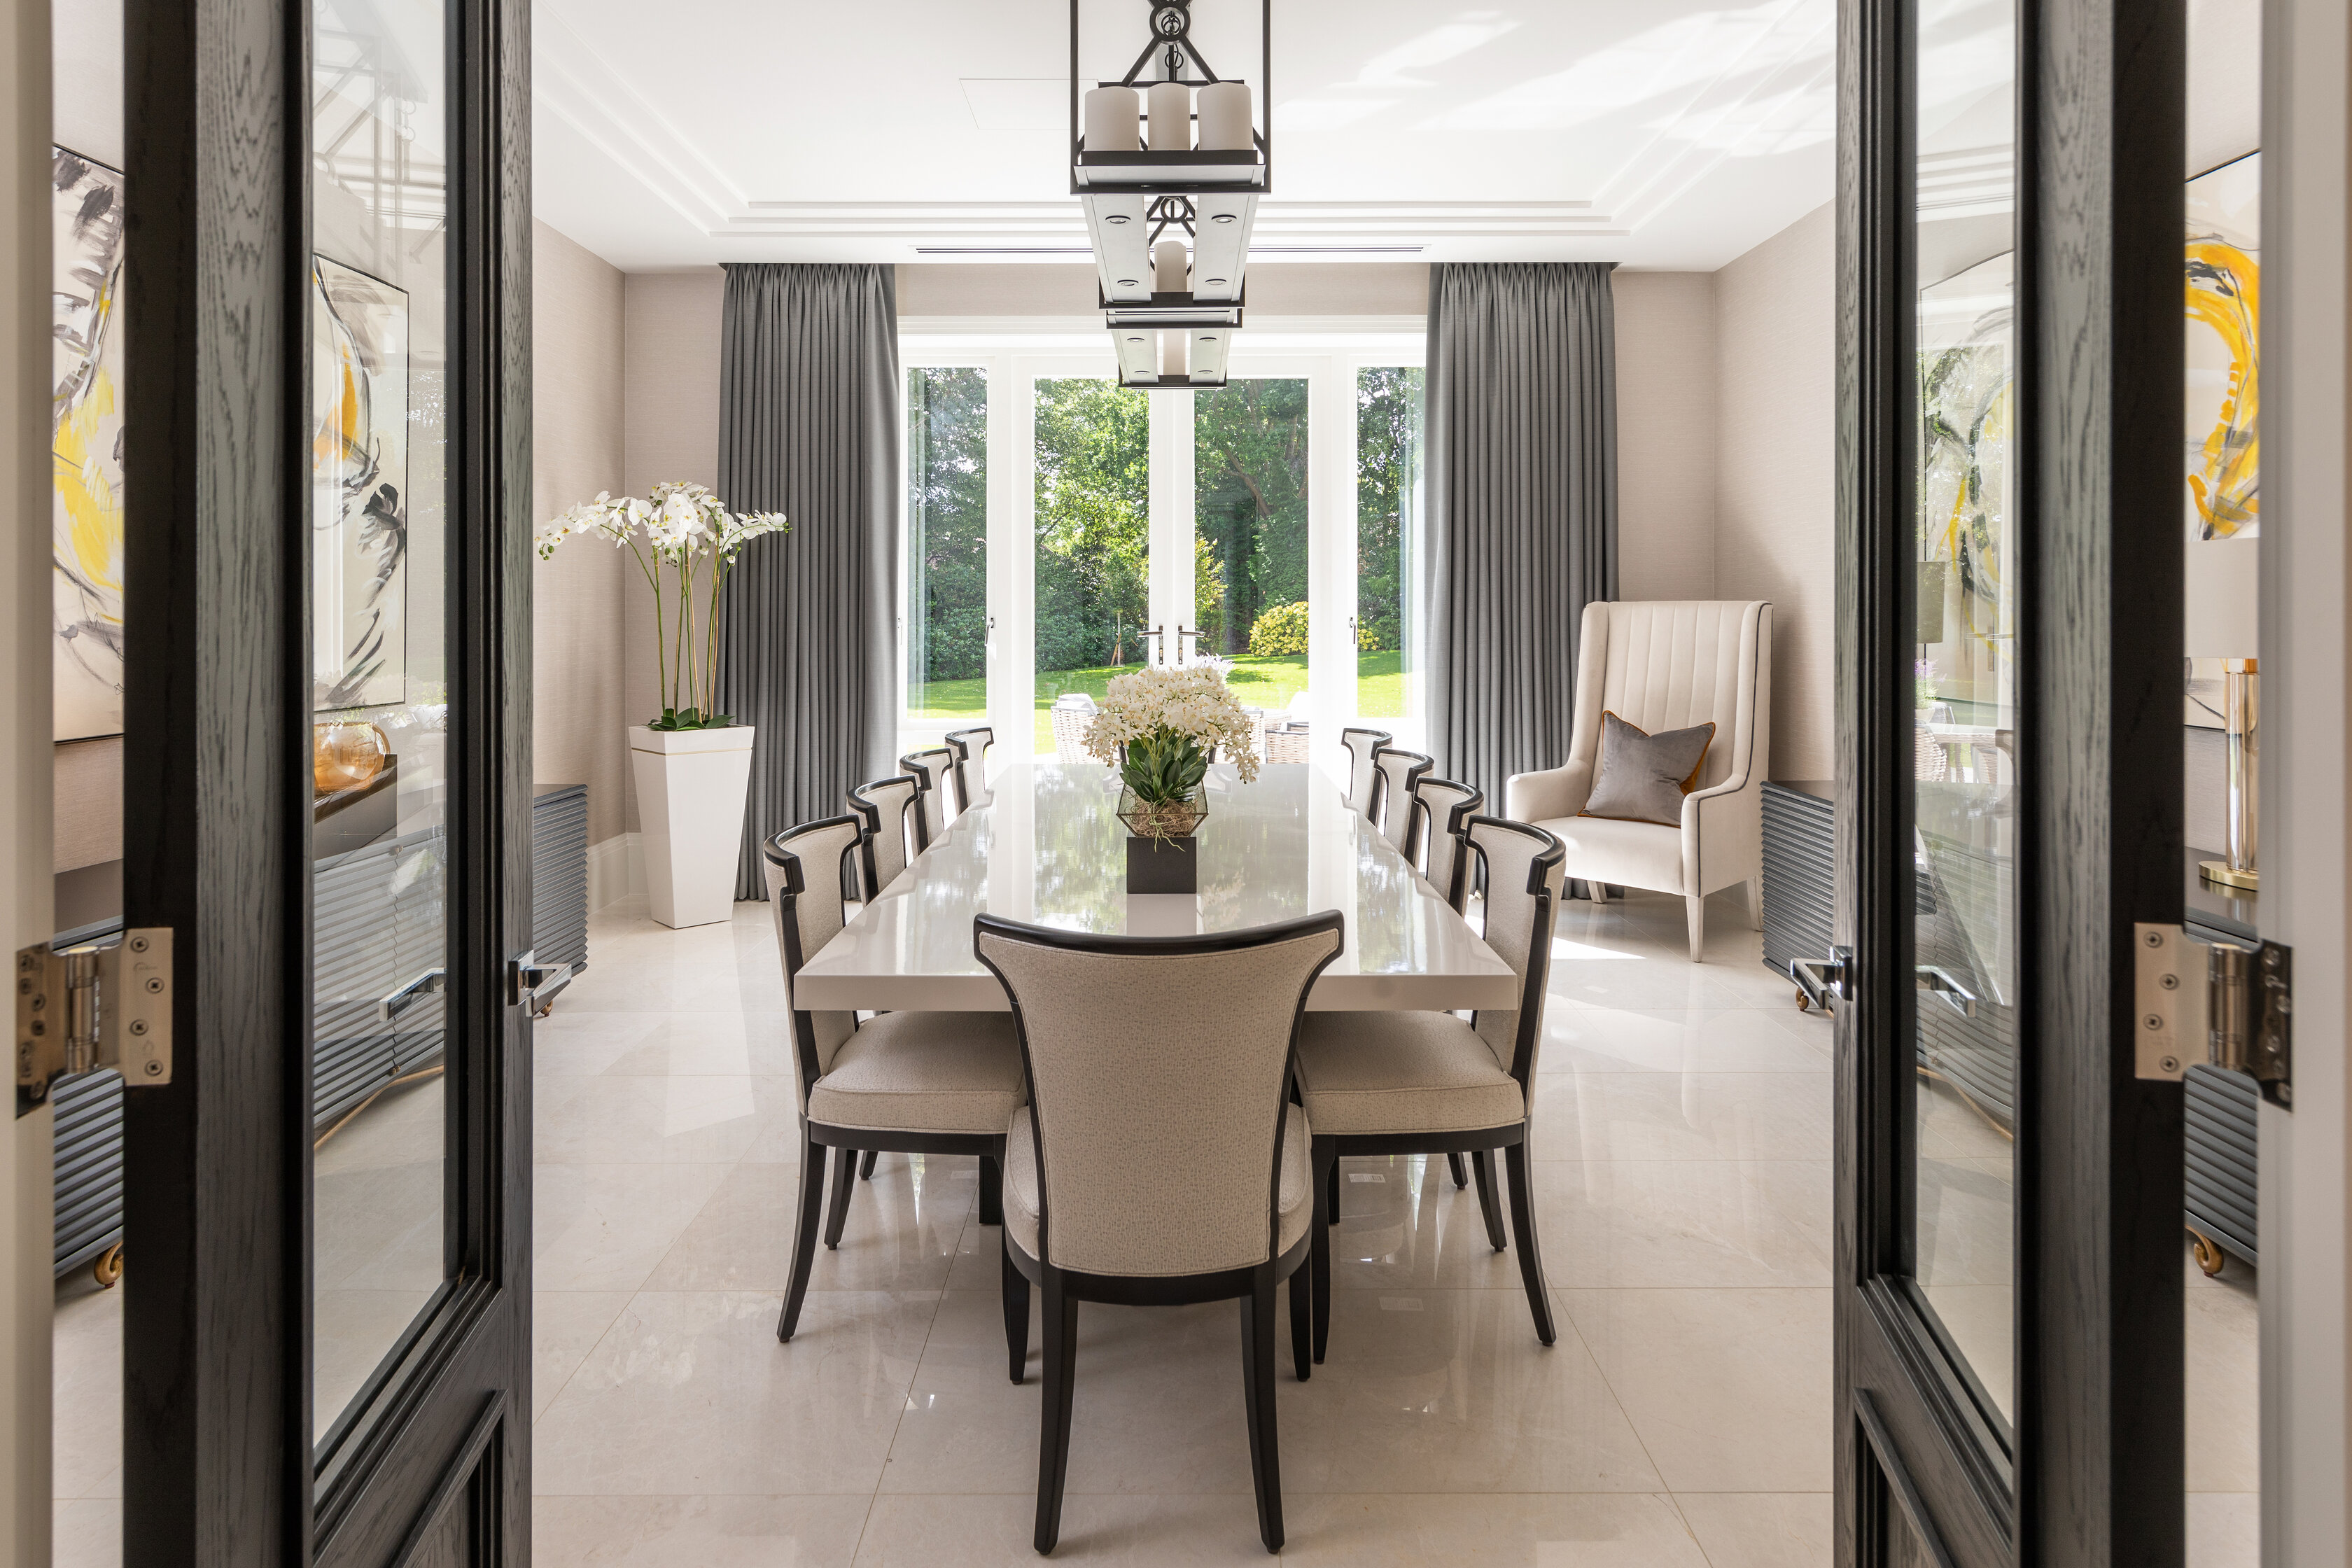 dining room with stylish decor and double doors